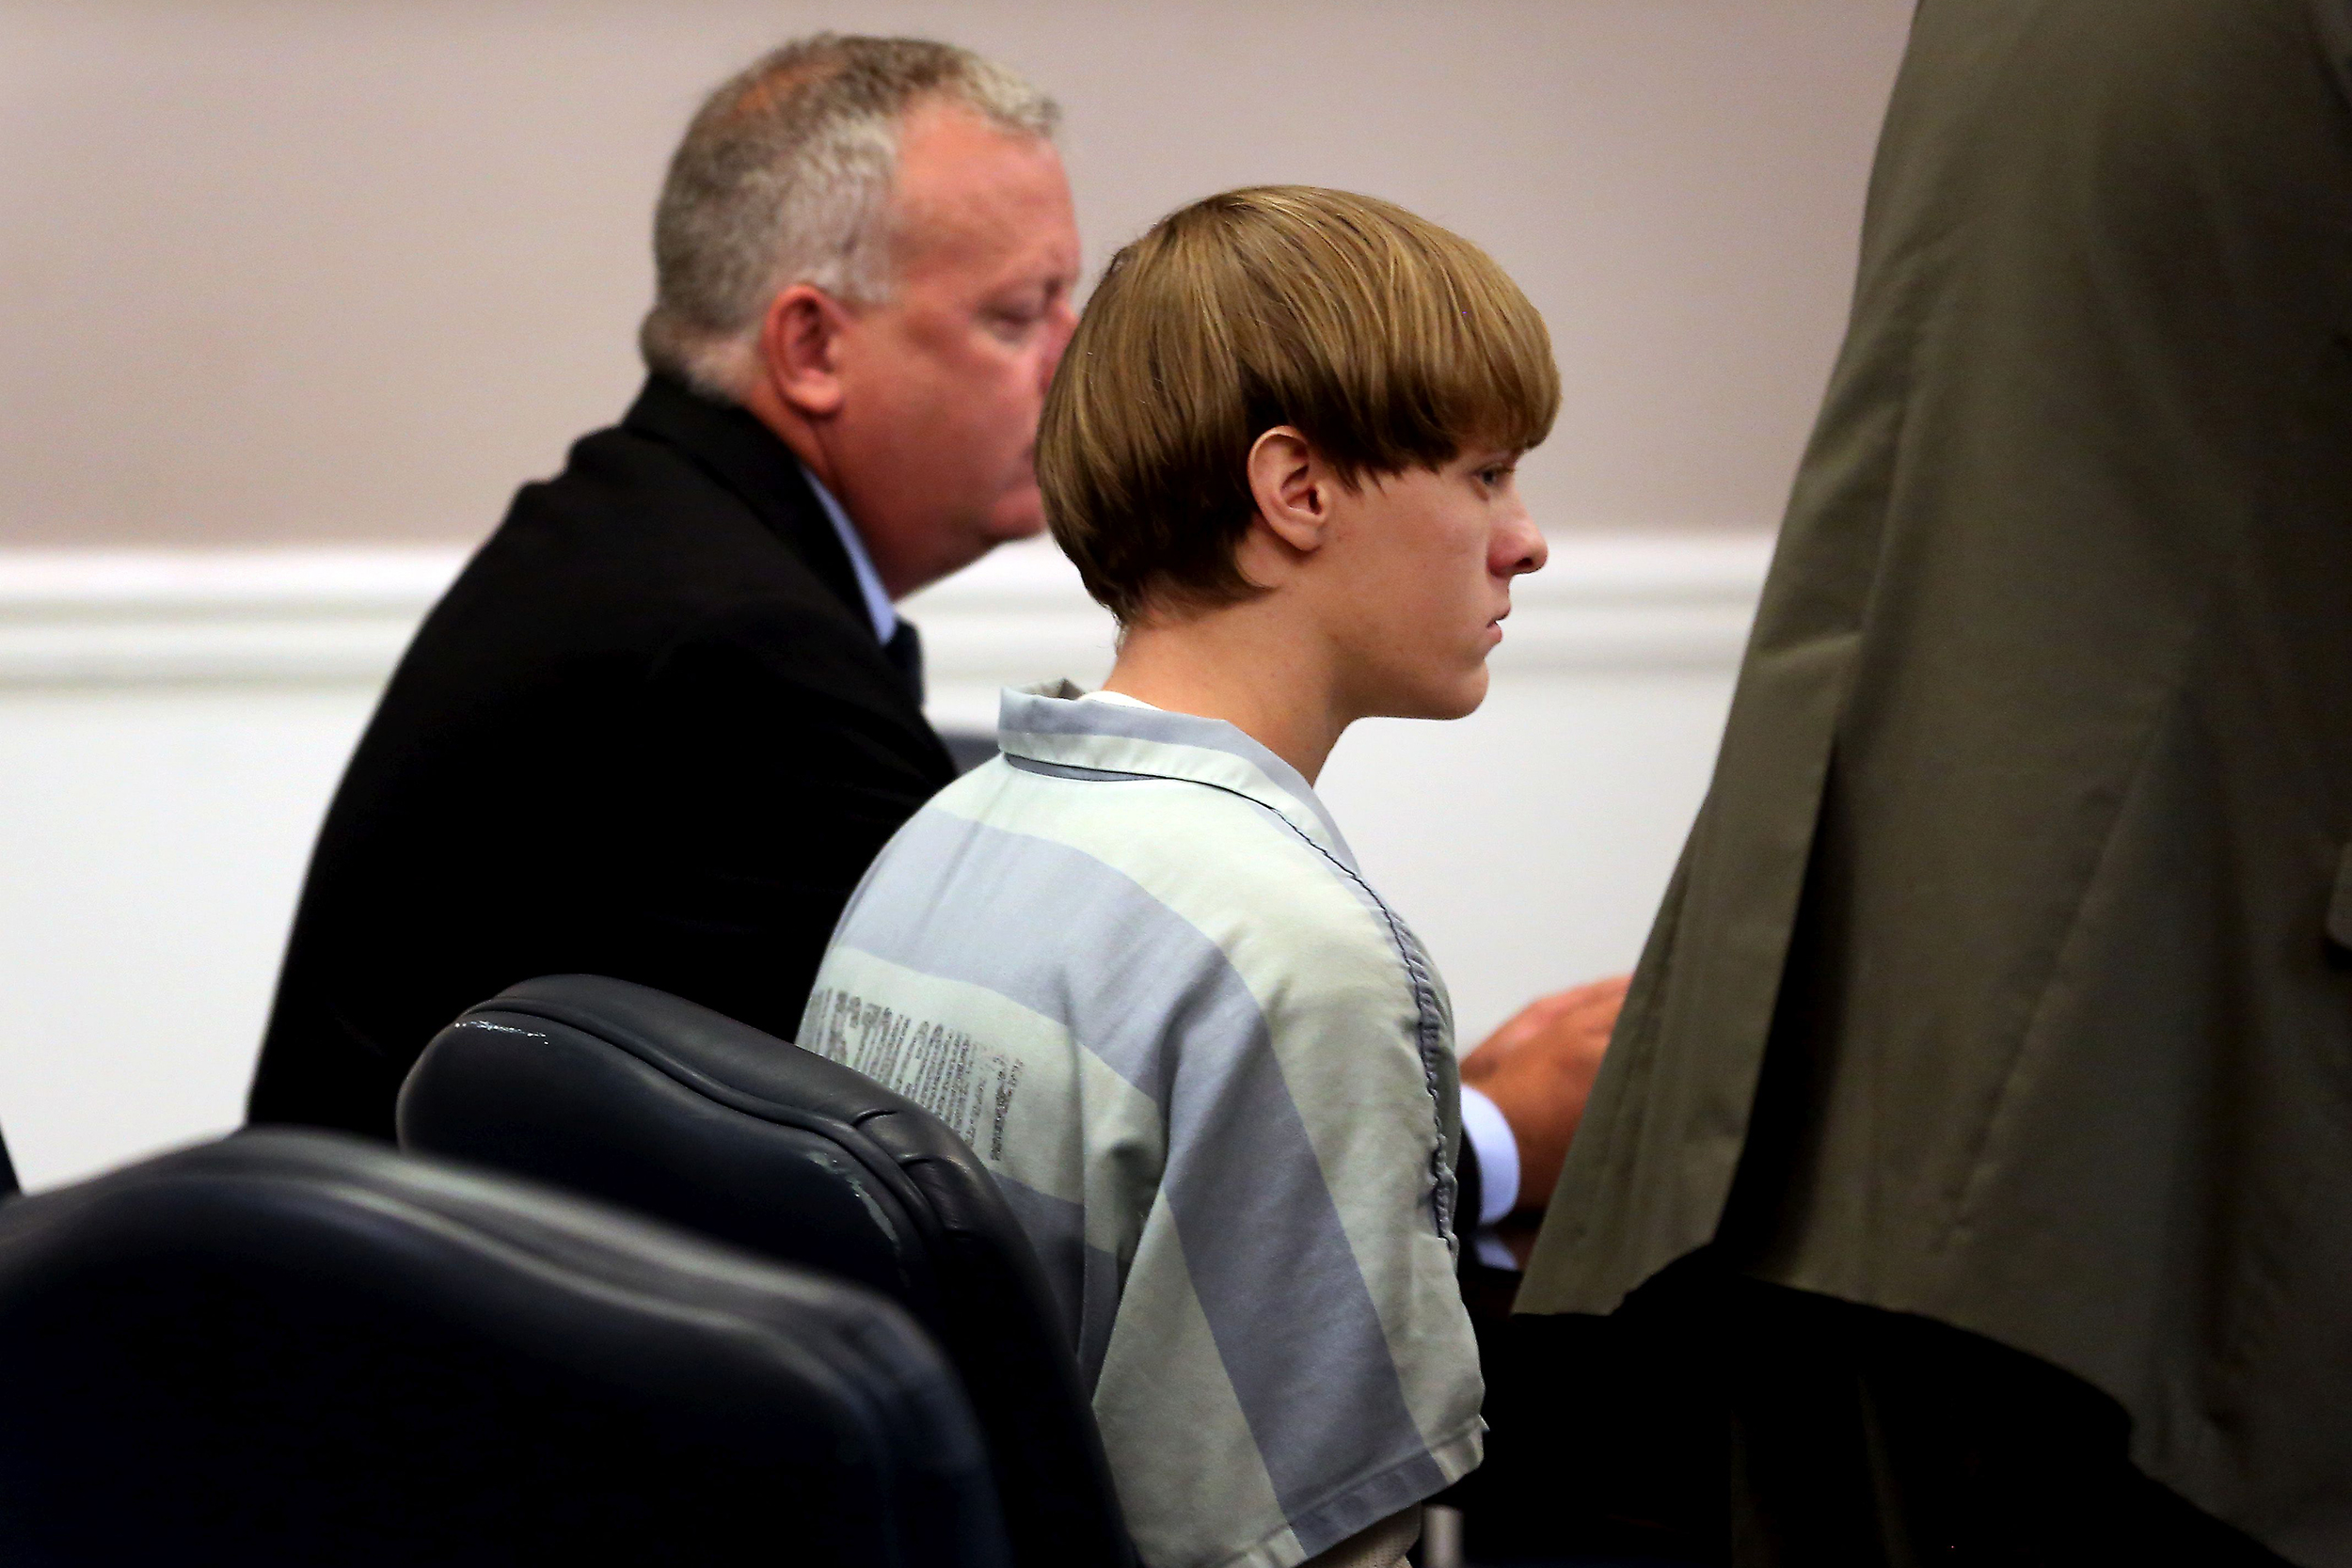 Death sentence upheld for man who killed 9 in South Carolina church shooting